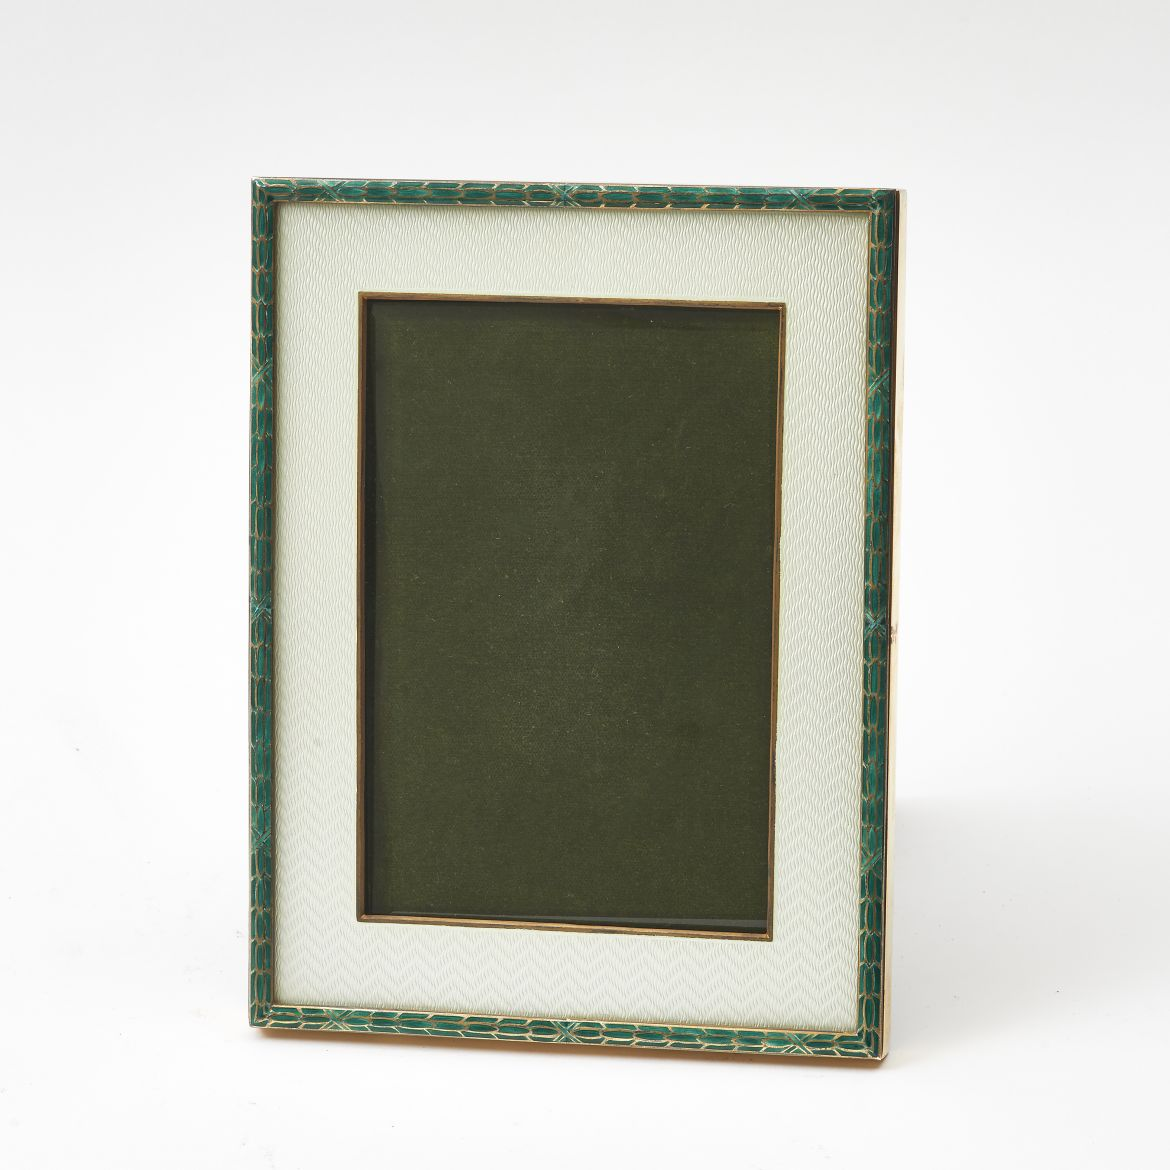 White & Green Enamel Frame